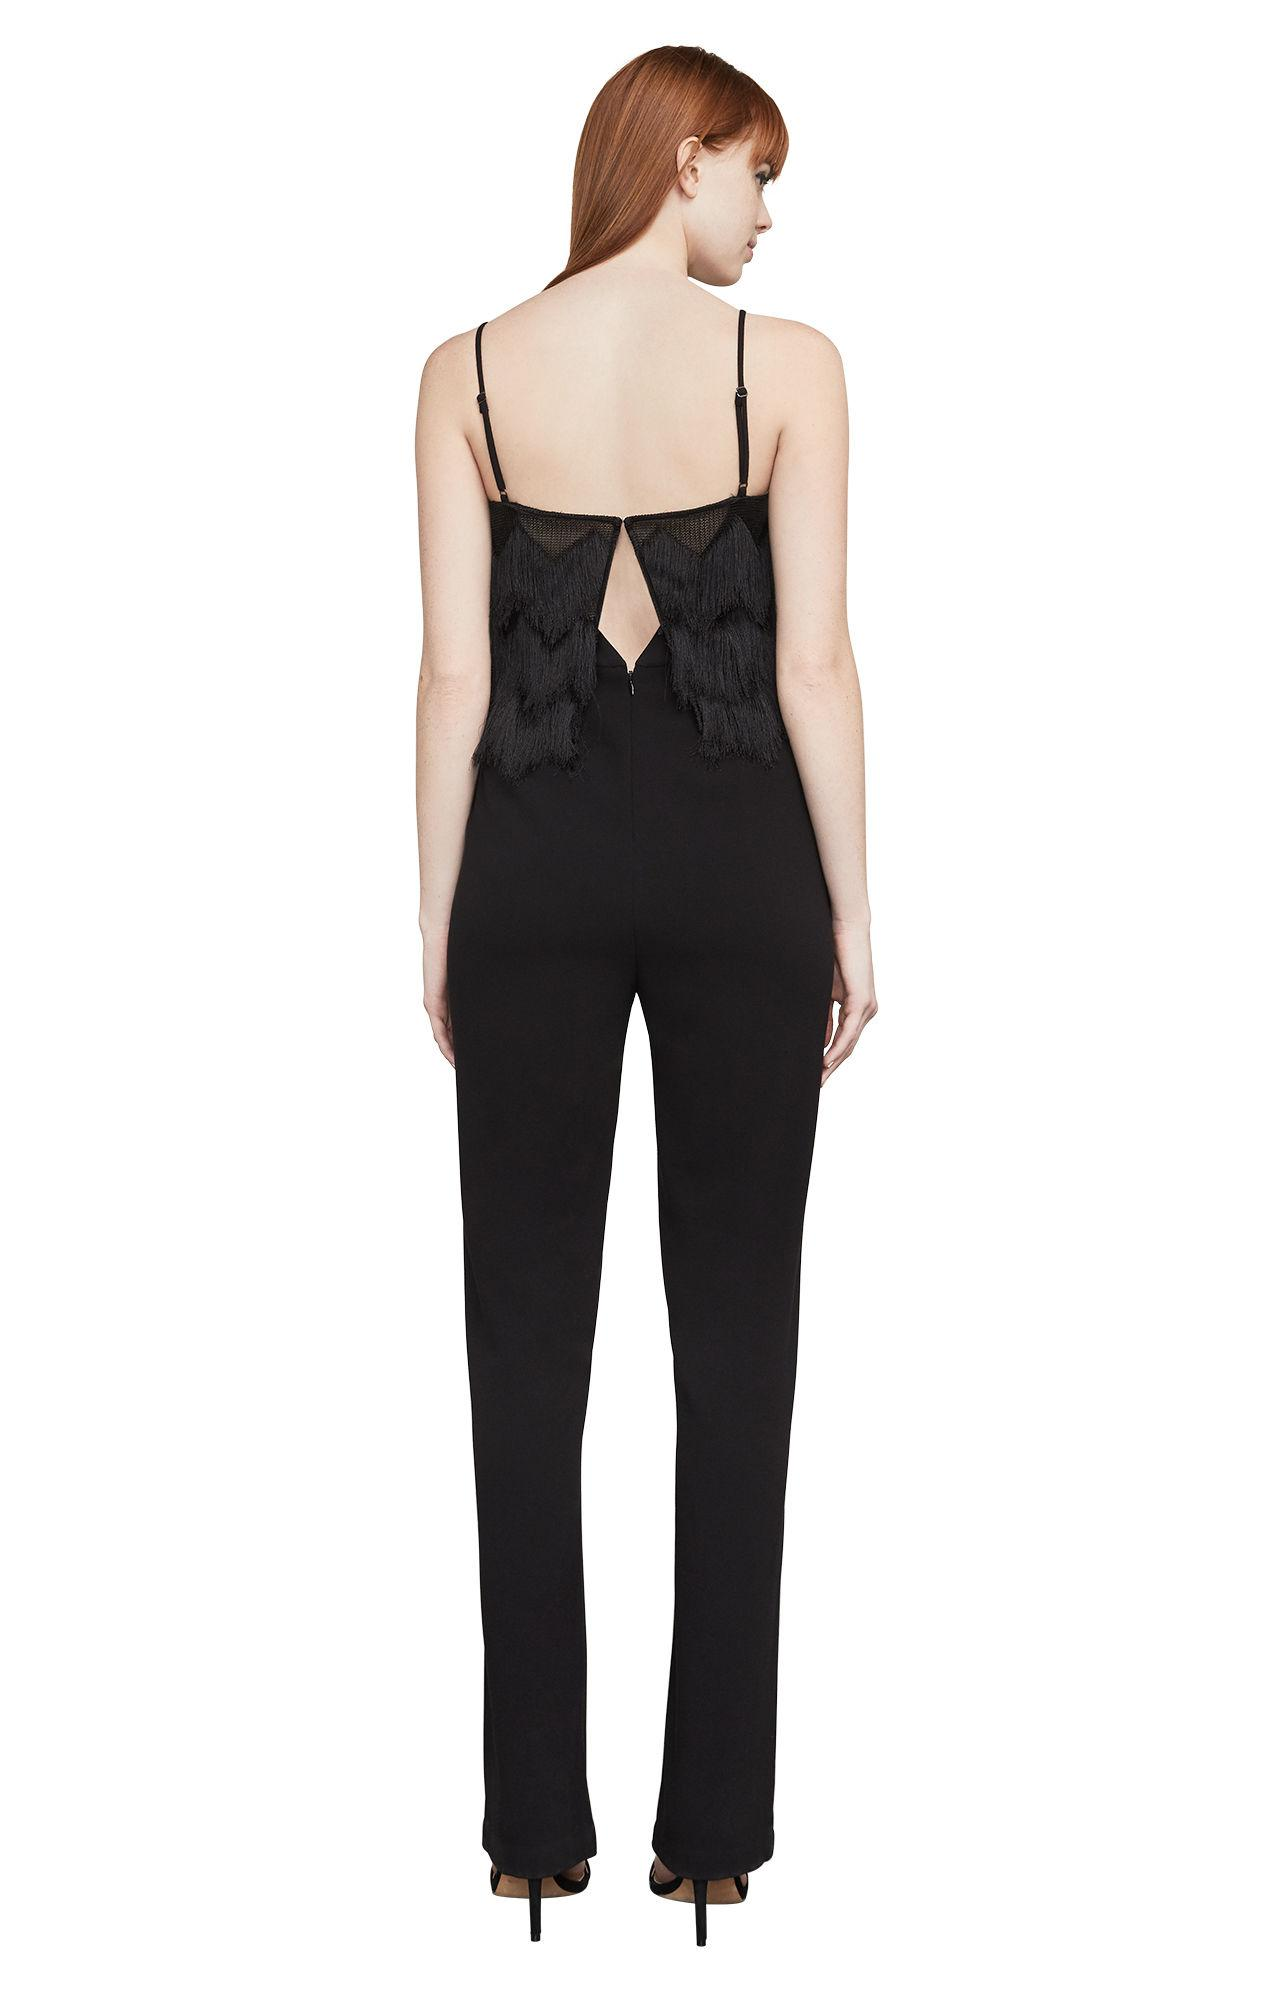 5935c0067d0a Gallery. Previously sold at  BCBGMAXAZRIA · Women s Black Jumpsuits ...